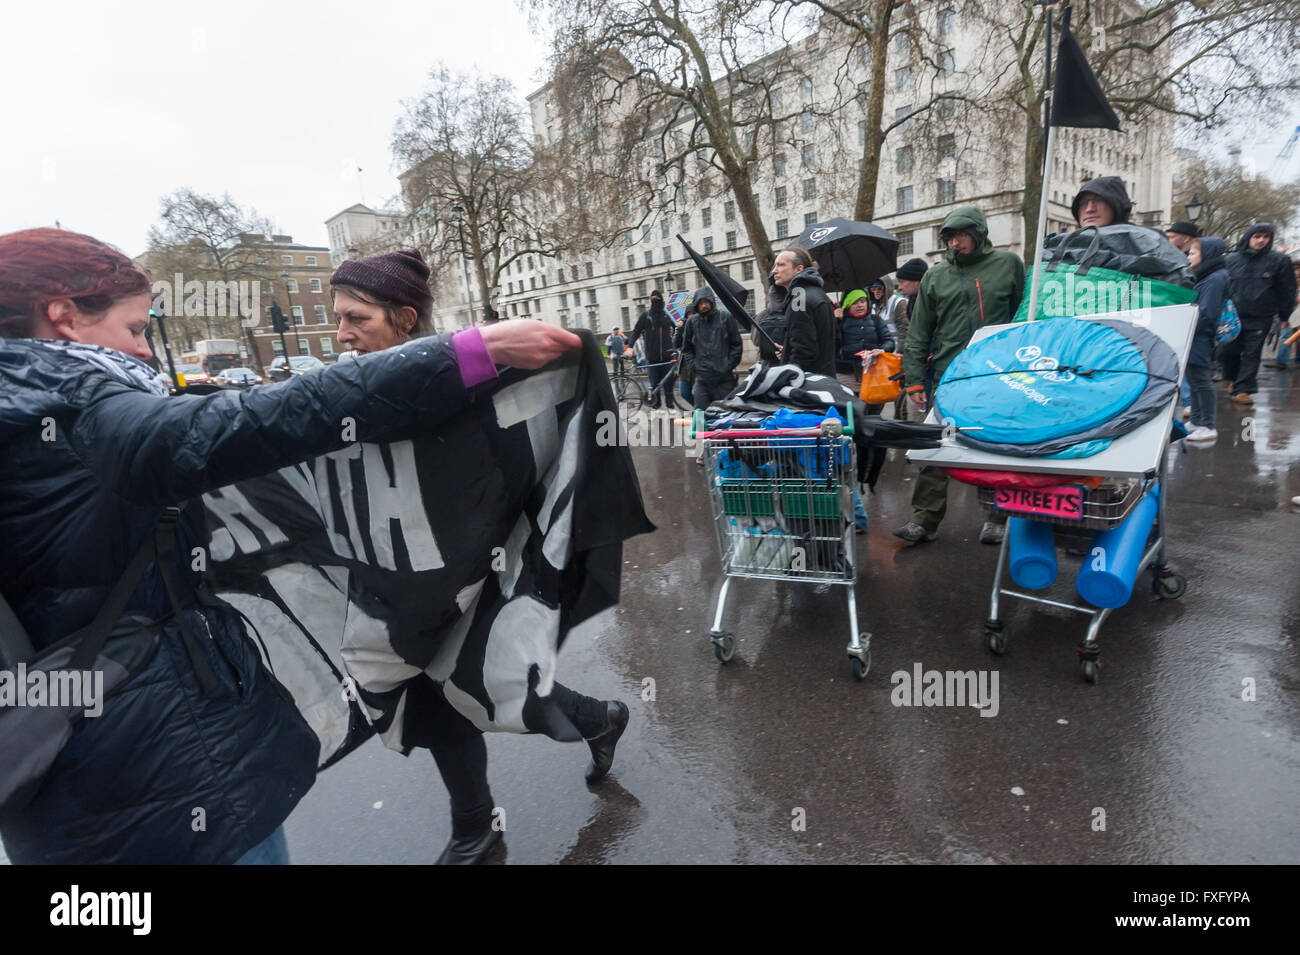 London, UK. 15th April, 2016. Direct action group Streets Kitchen which which supports homeless on London streets Stock Photo